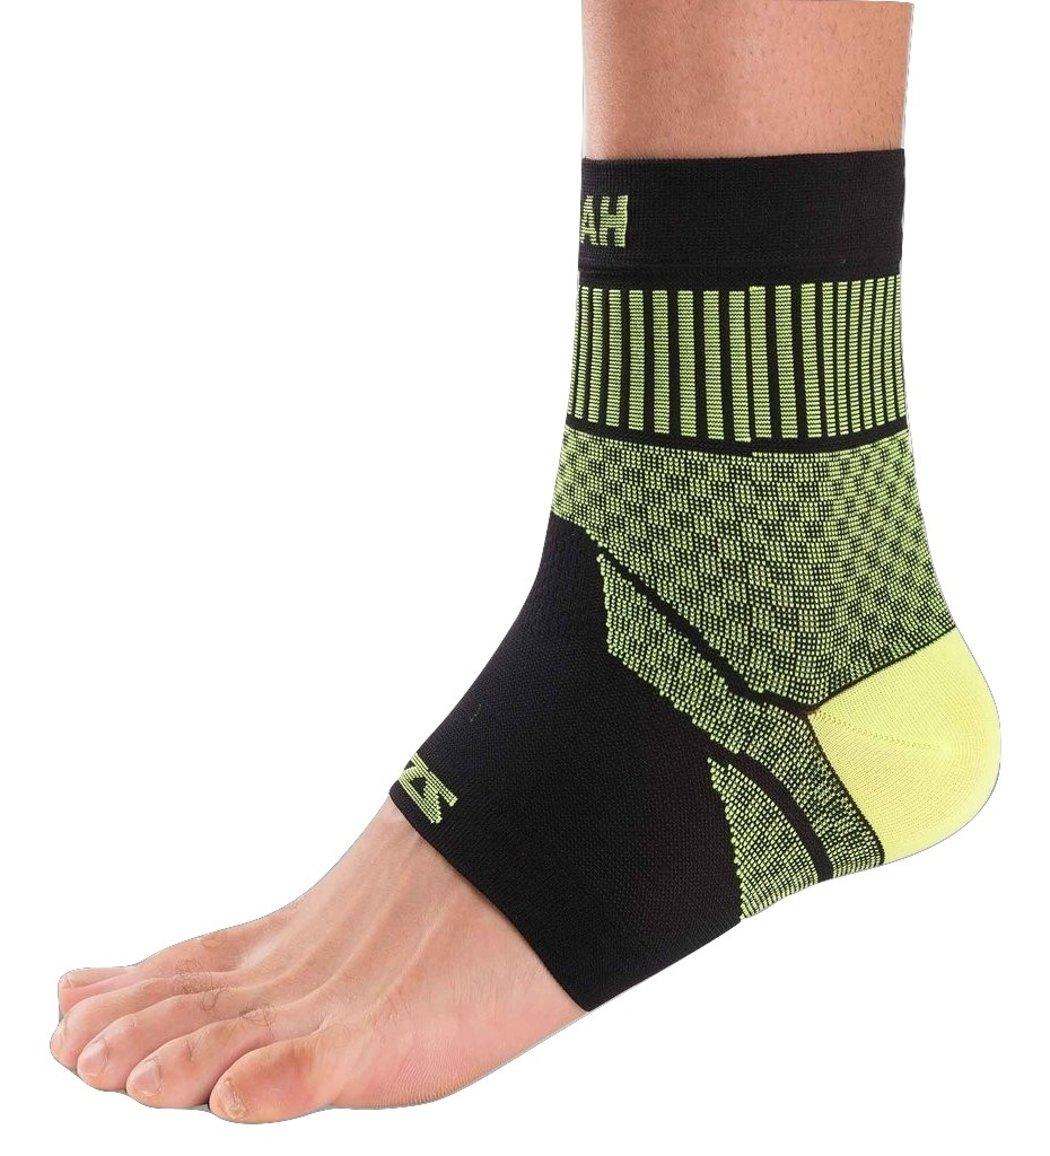 3bbd9b06af Zensah Compression Ankle Support -- Free Shipping -- Ithaca Sports